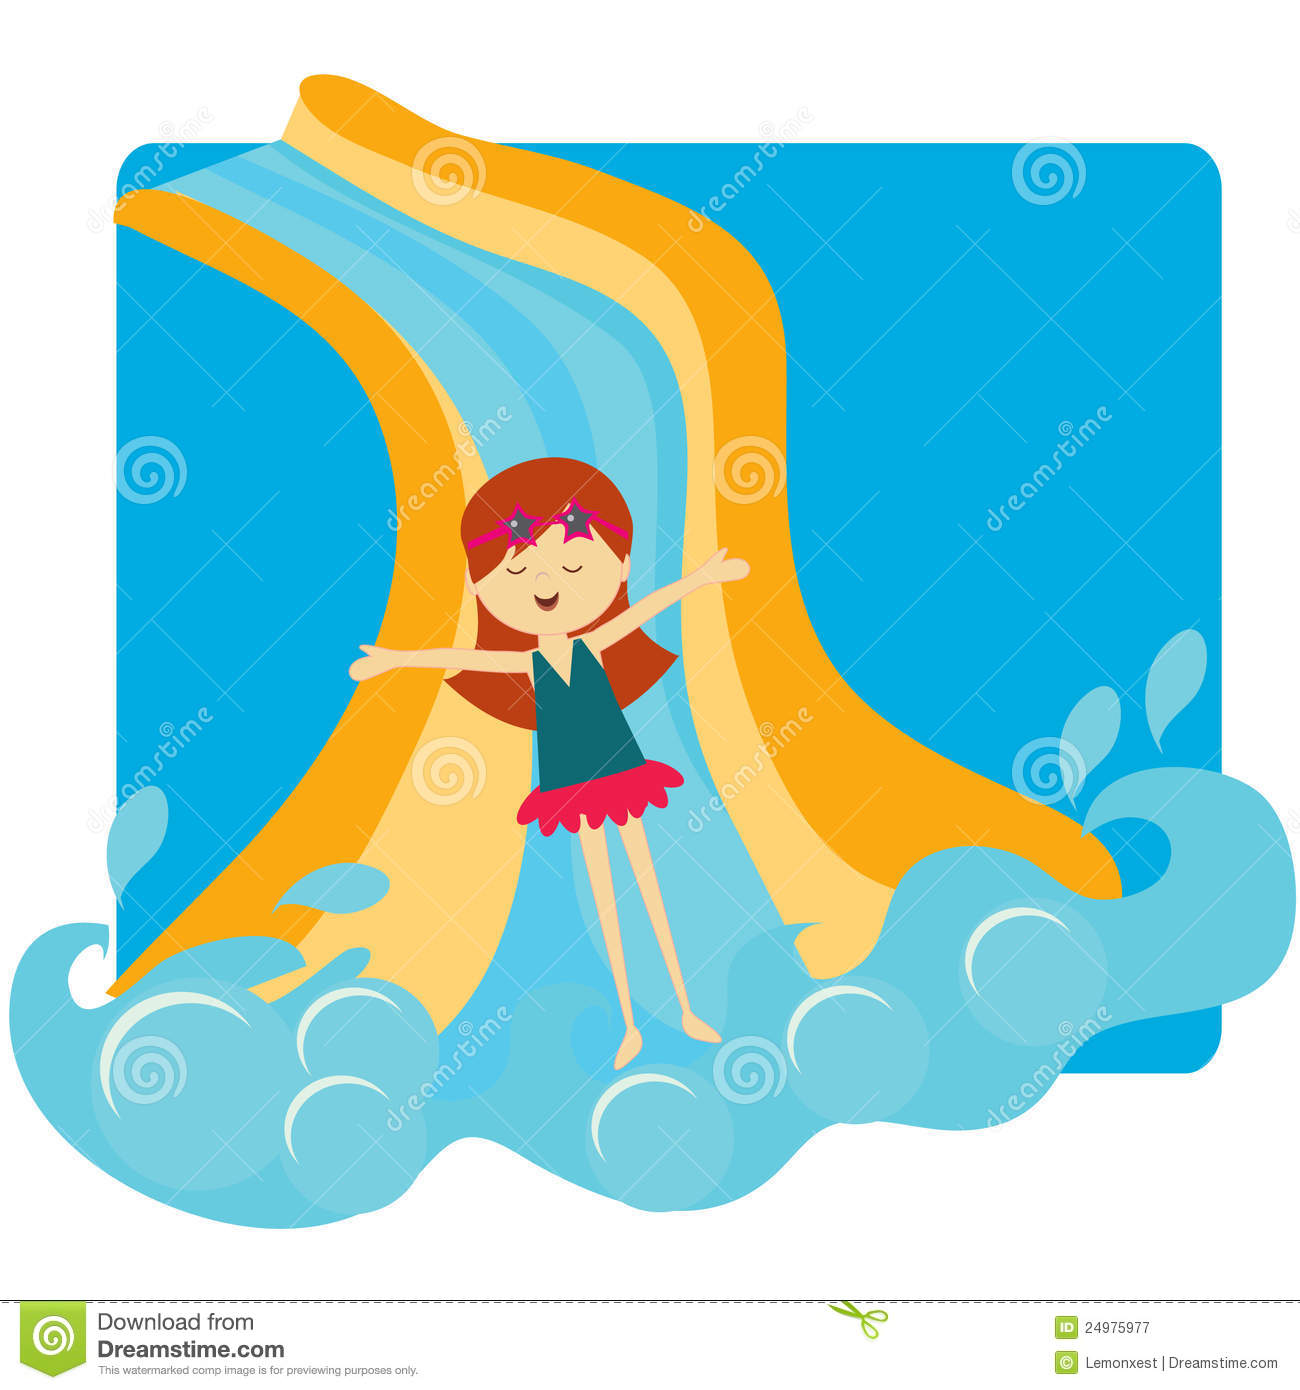 Water slide clipart girl.